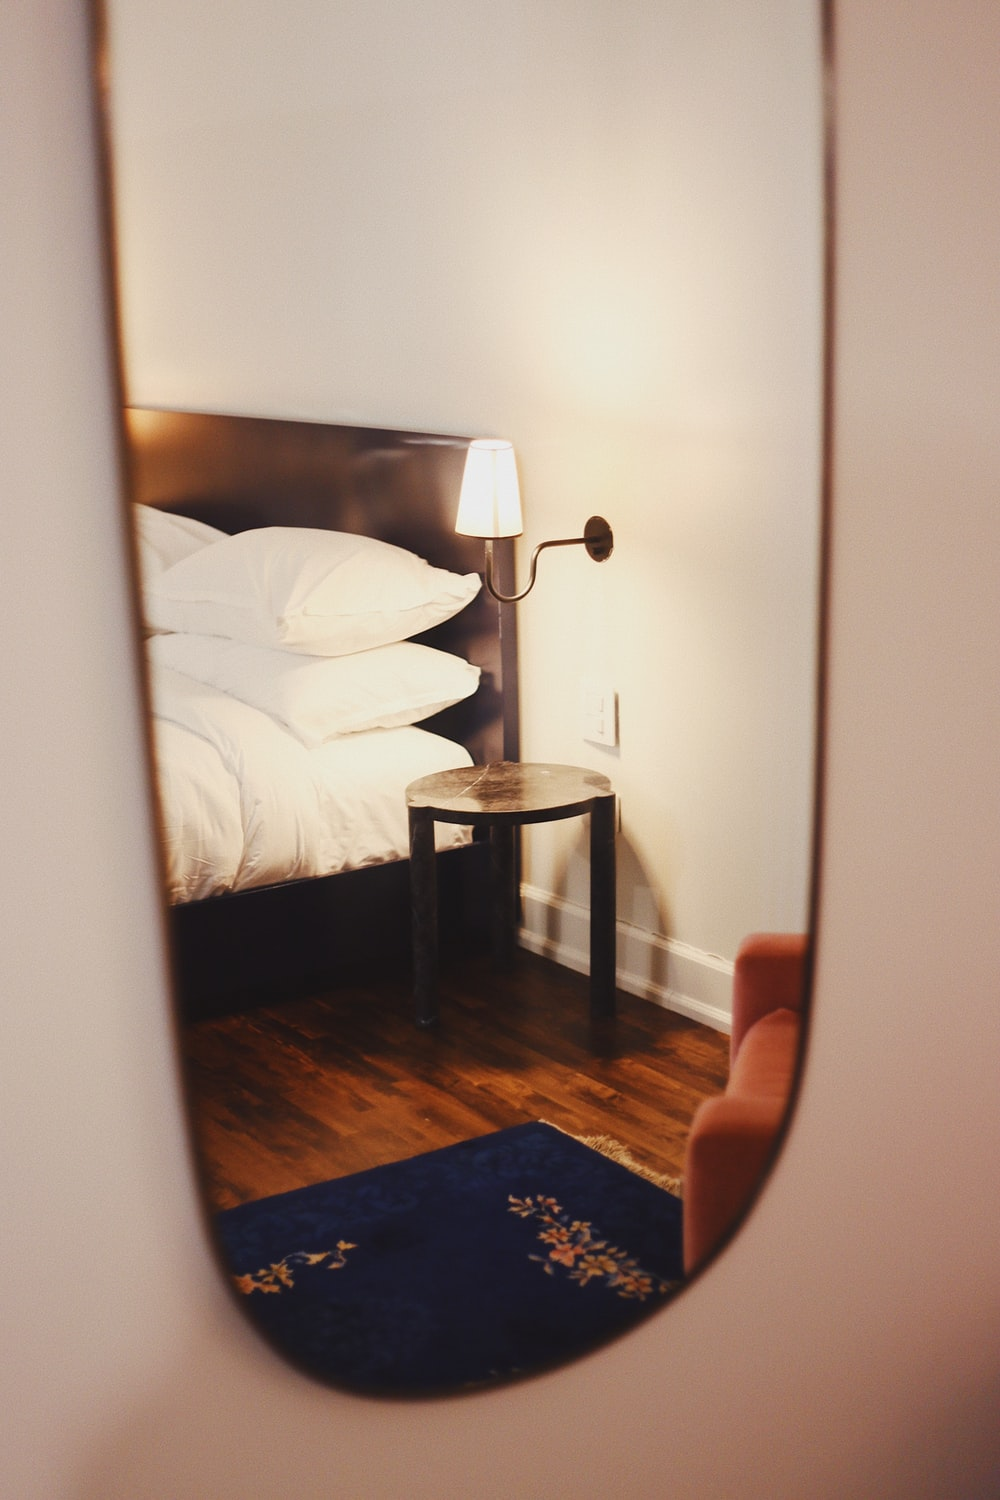 wall mirror view of bed